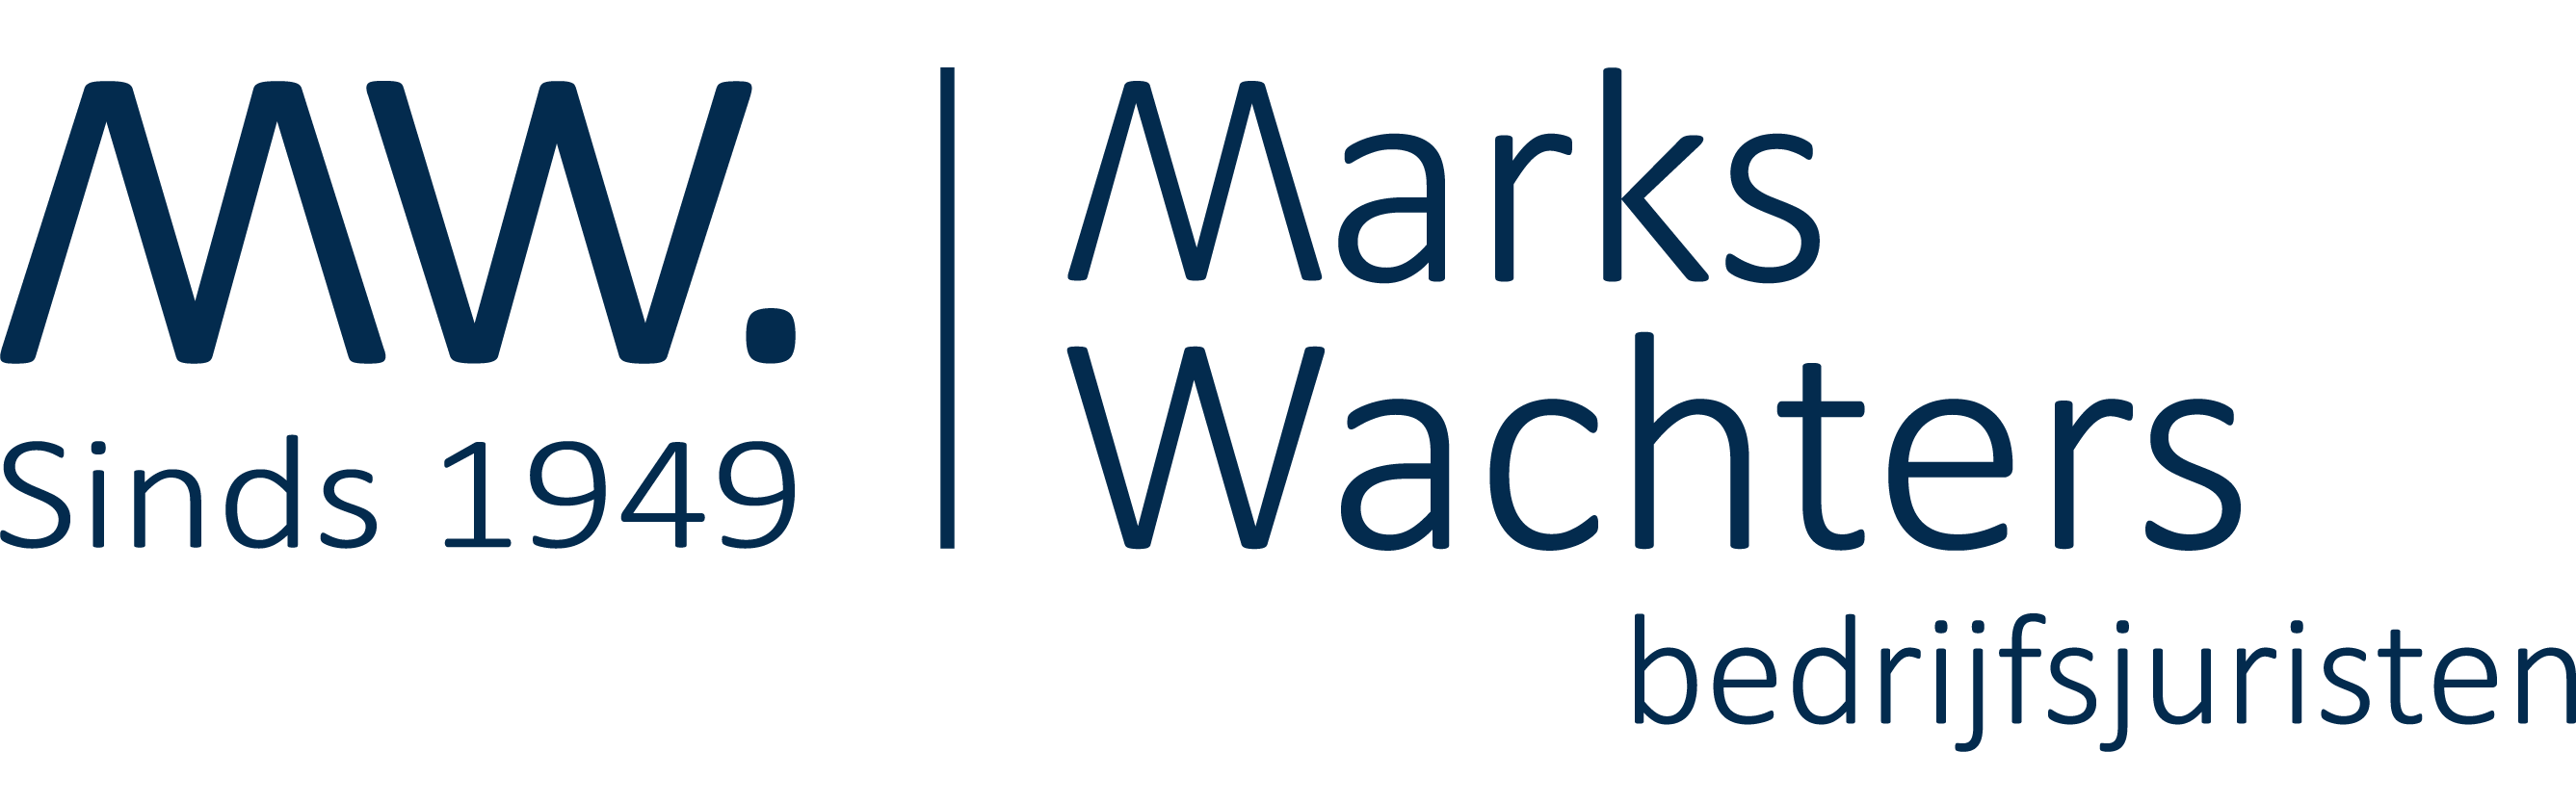 Marks-wachters